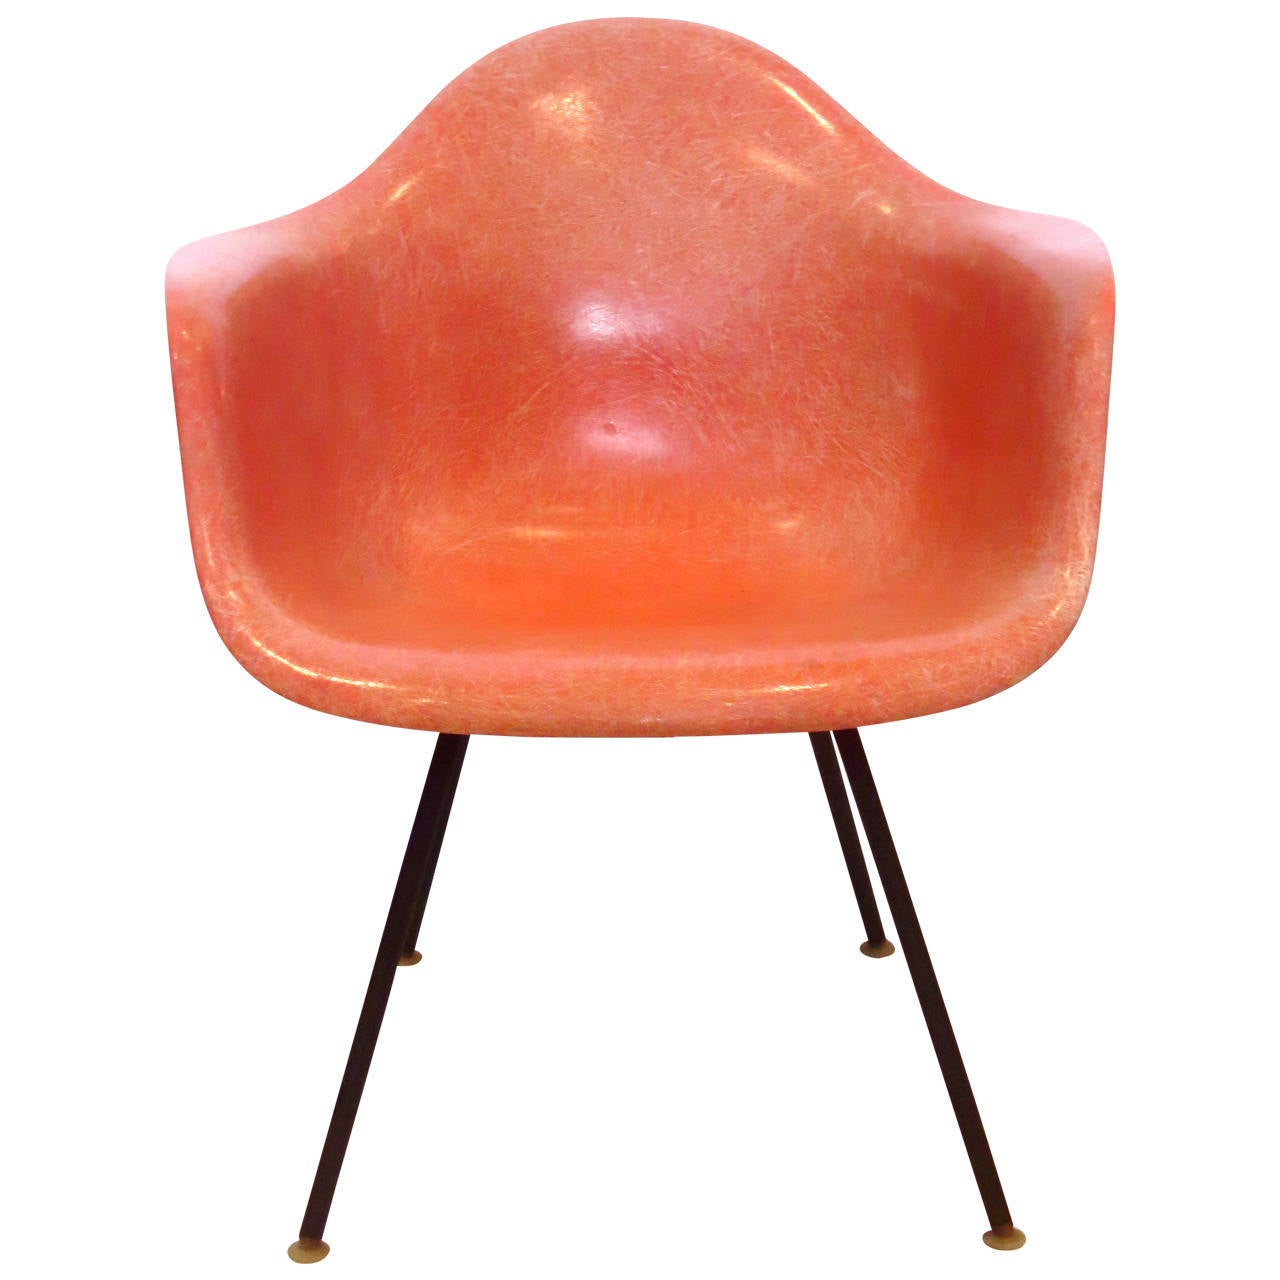 1950s American Modern Eames Fiberglass Arm Shell Chair for  : 2205812l from www.1stdibs.com size 1280 x 1280 jpeg 89kB